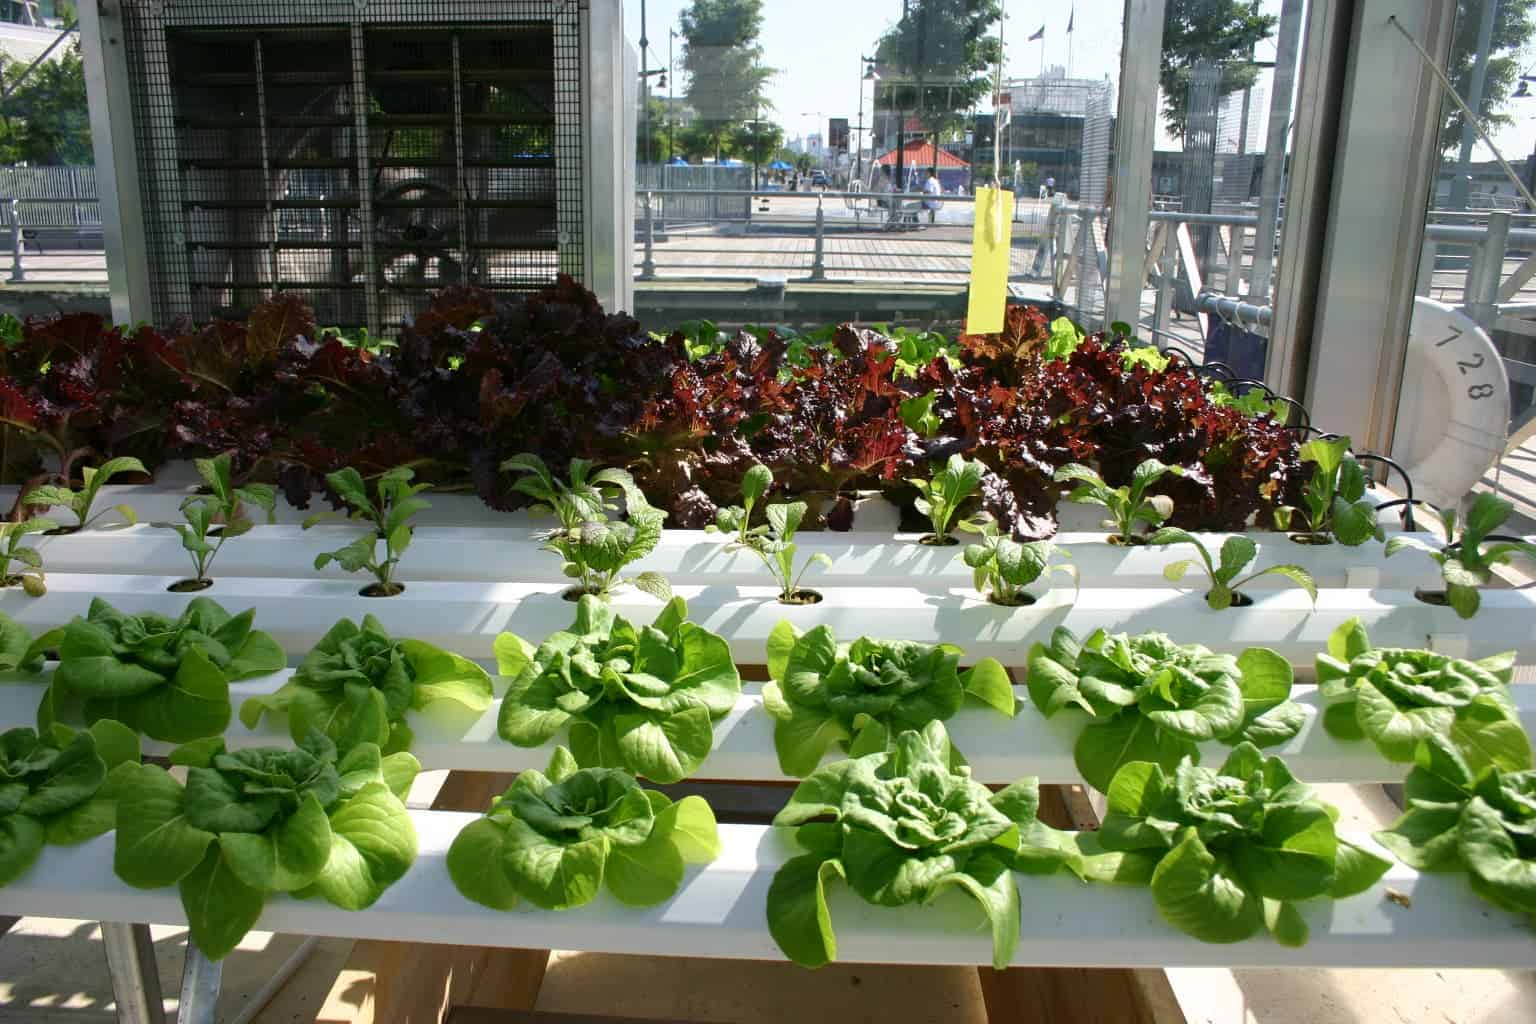 Forum on this topic: How to Grow Plants Using Hydroponics, how-to-grow-plants-using-hydroponics/